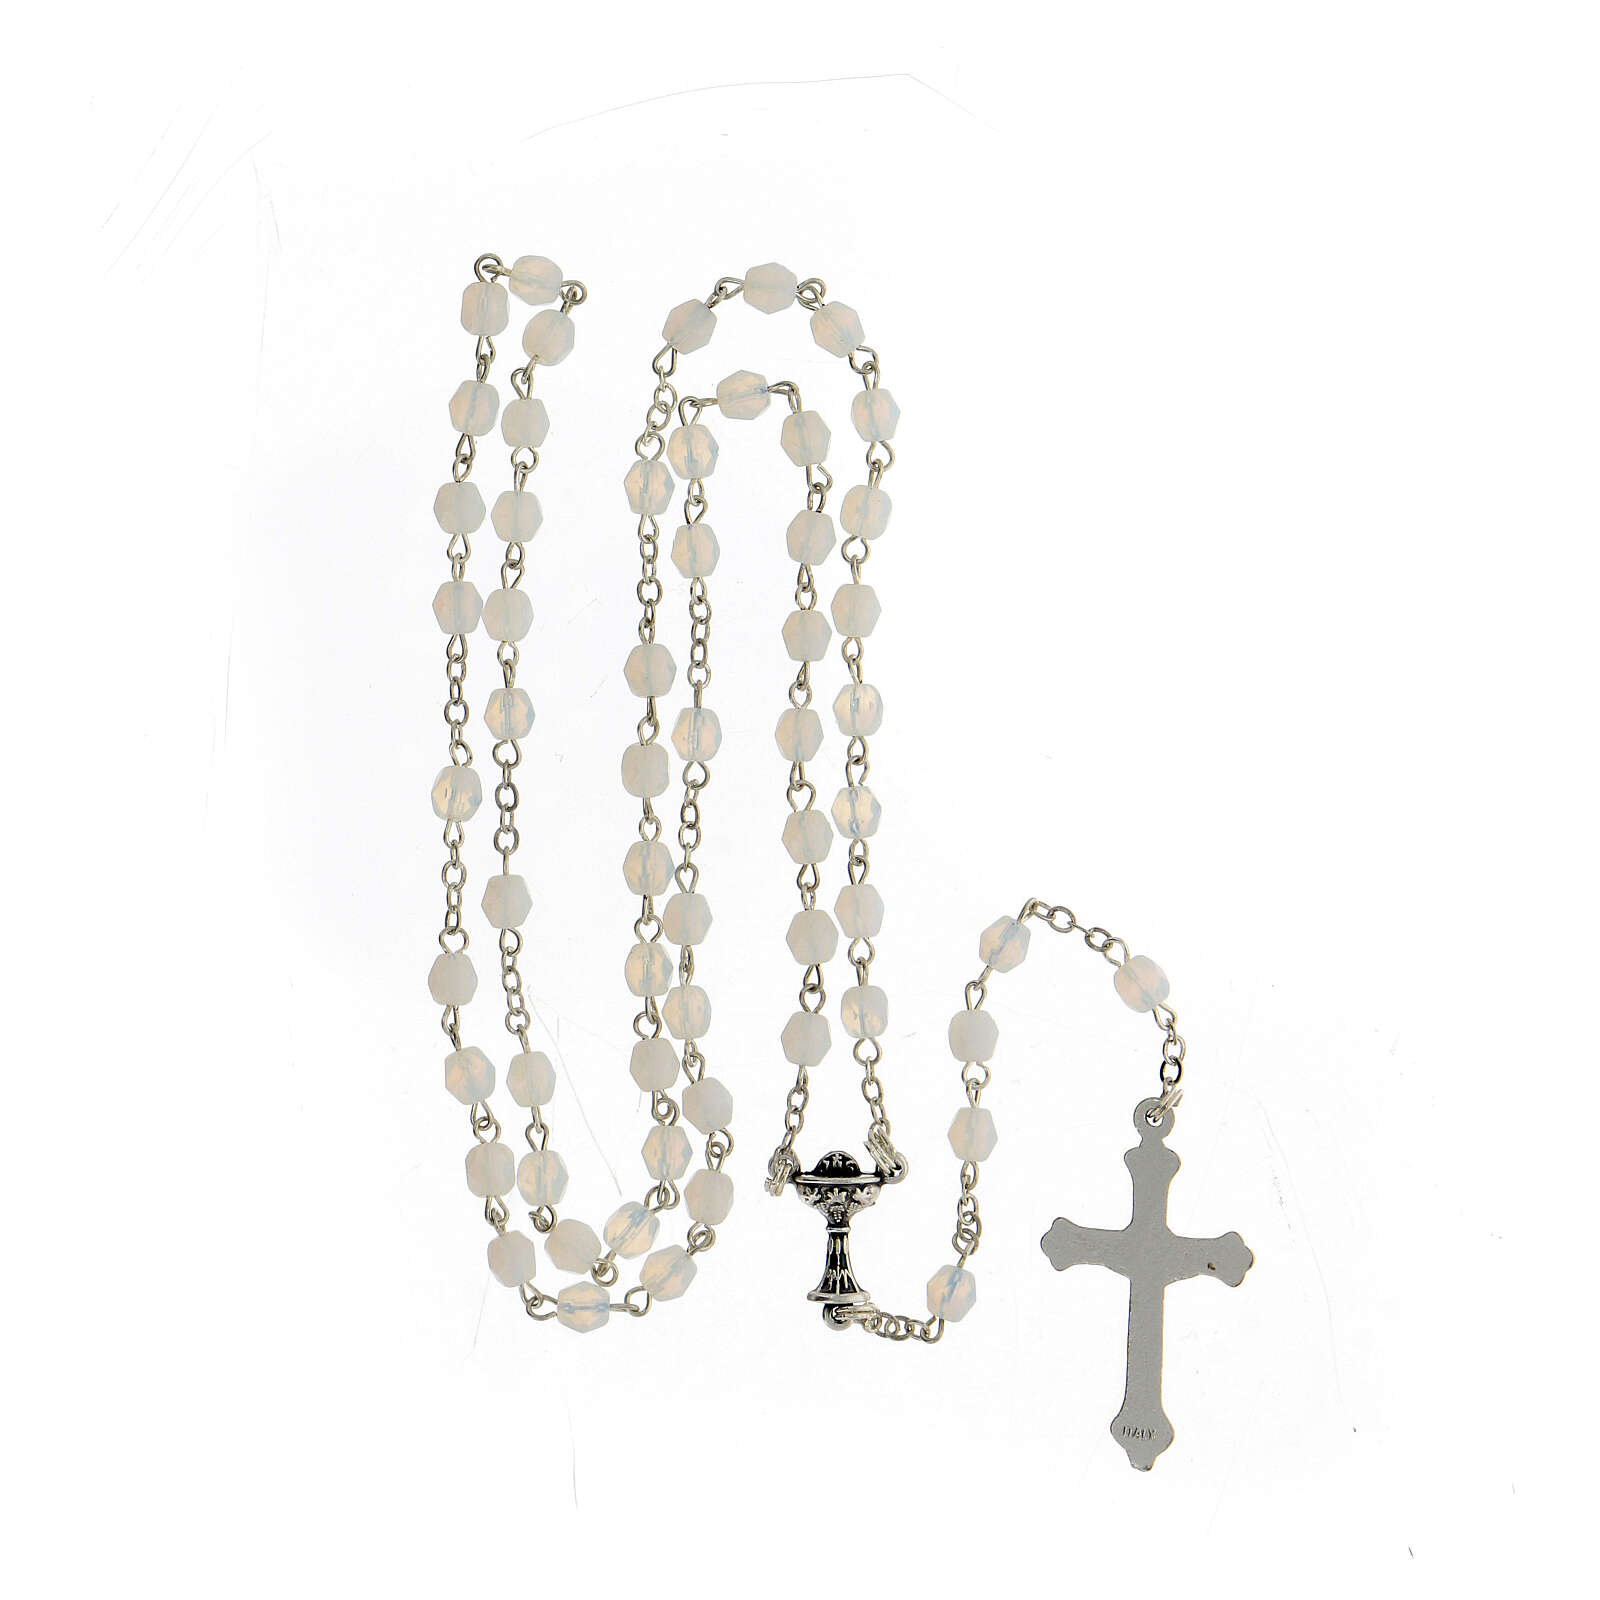 Wheat ear chalice and grapes painting in aluminium with wooden back and rosary composed by glass pearls 4